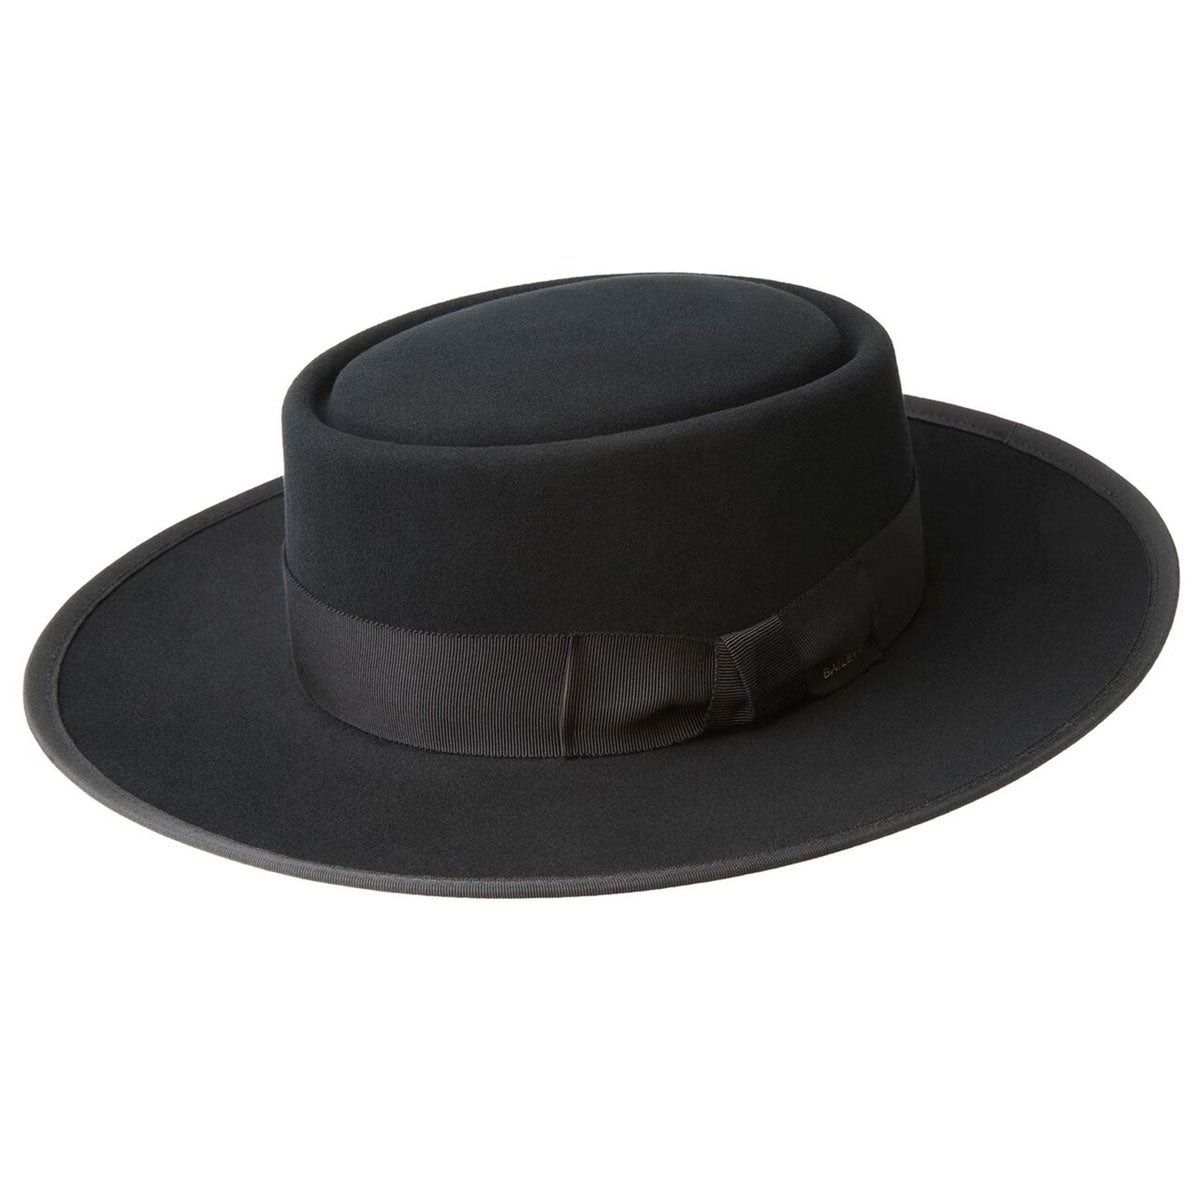 New Edwardian Style Men's Hats 1900-1920 Cosgrove Pork Pie $125.00 AT vintagedancer.com